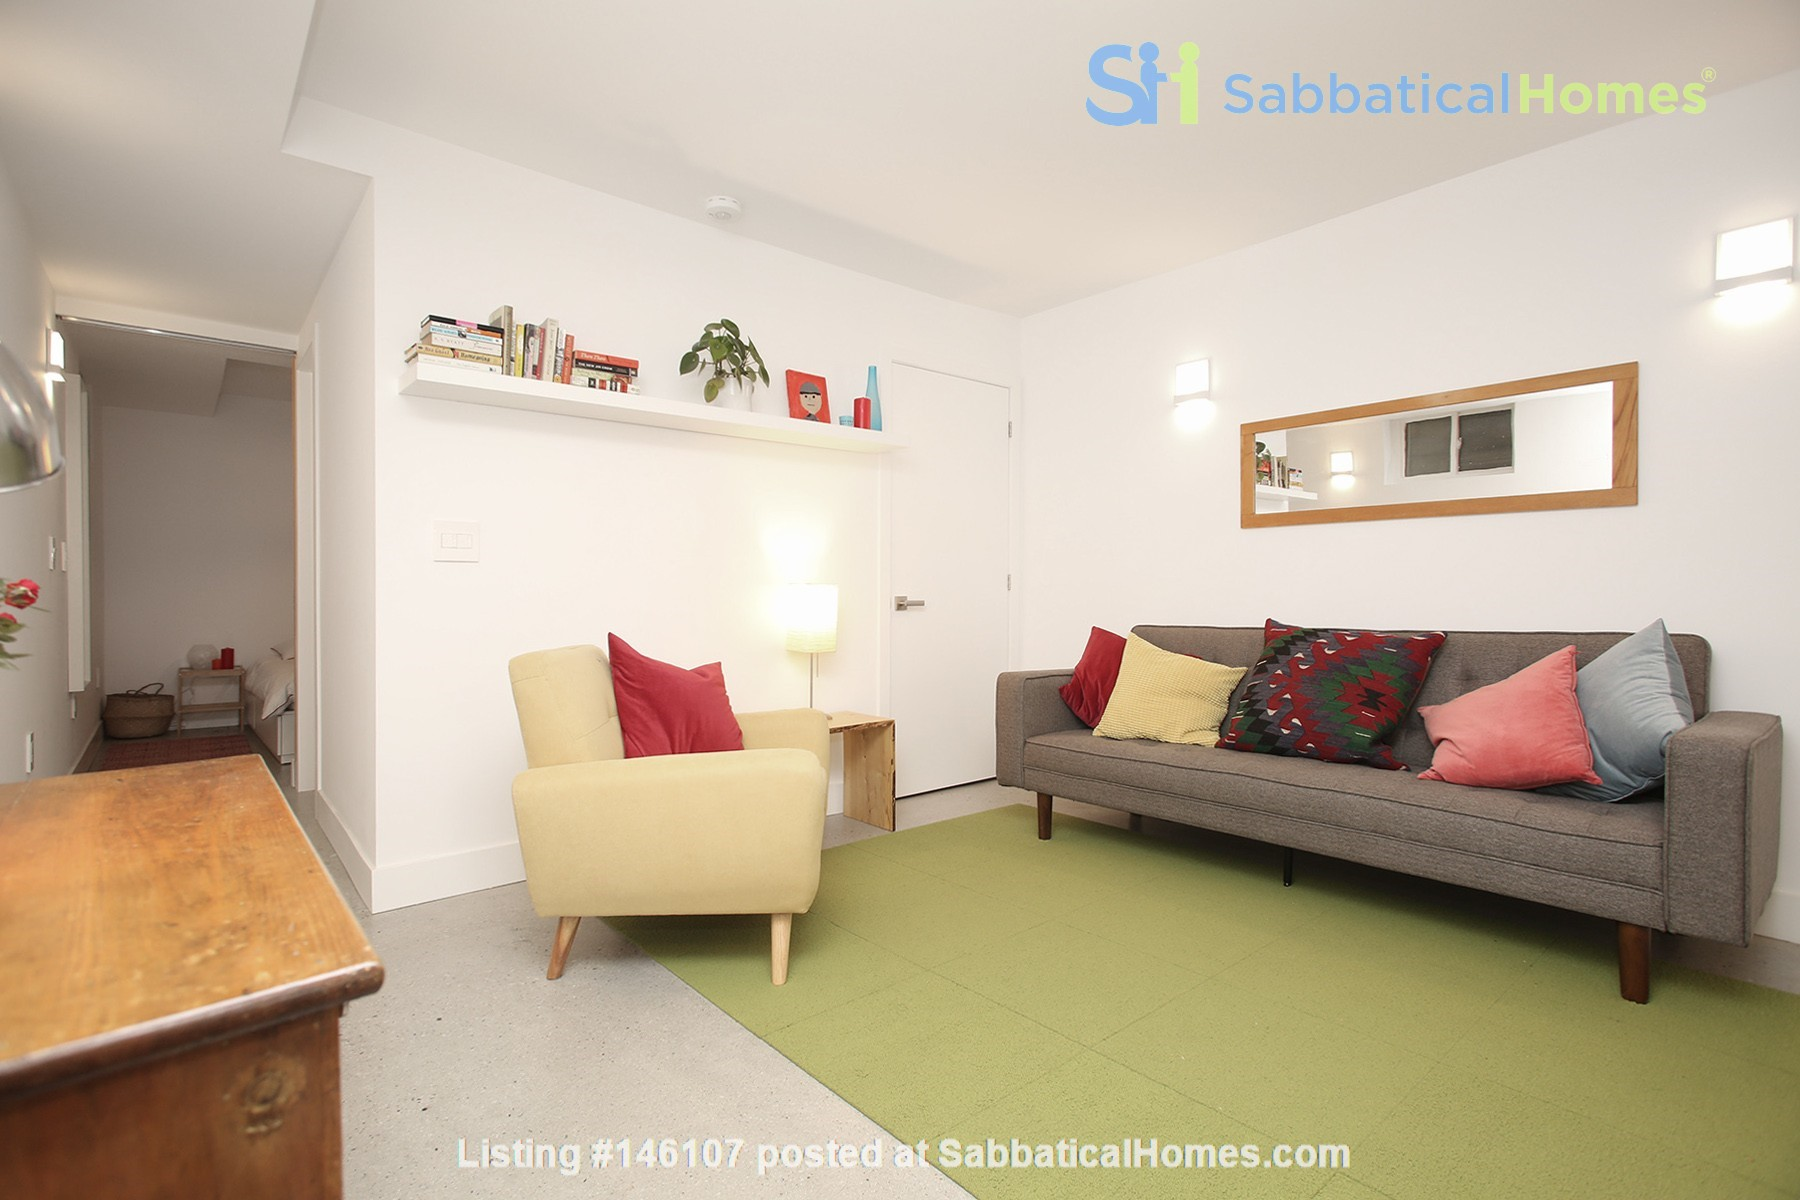 Modern designer space perfect for relaxing and working in! Home Rental in Toronto 3